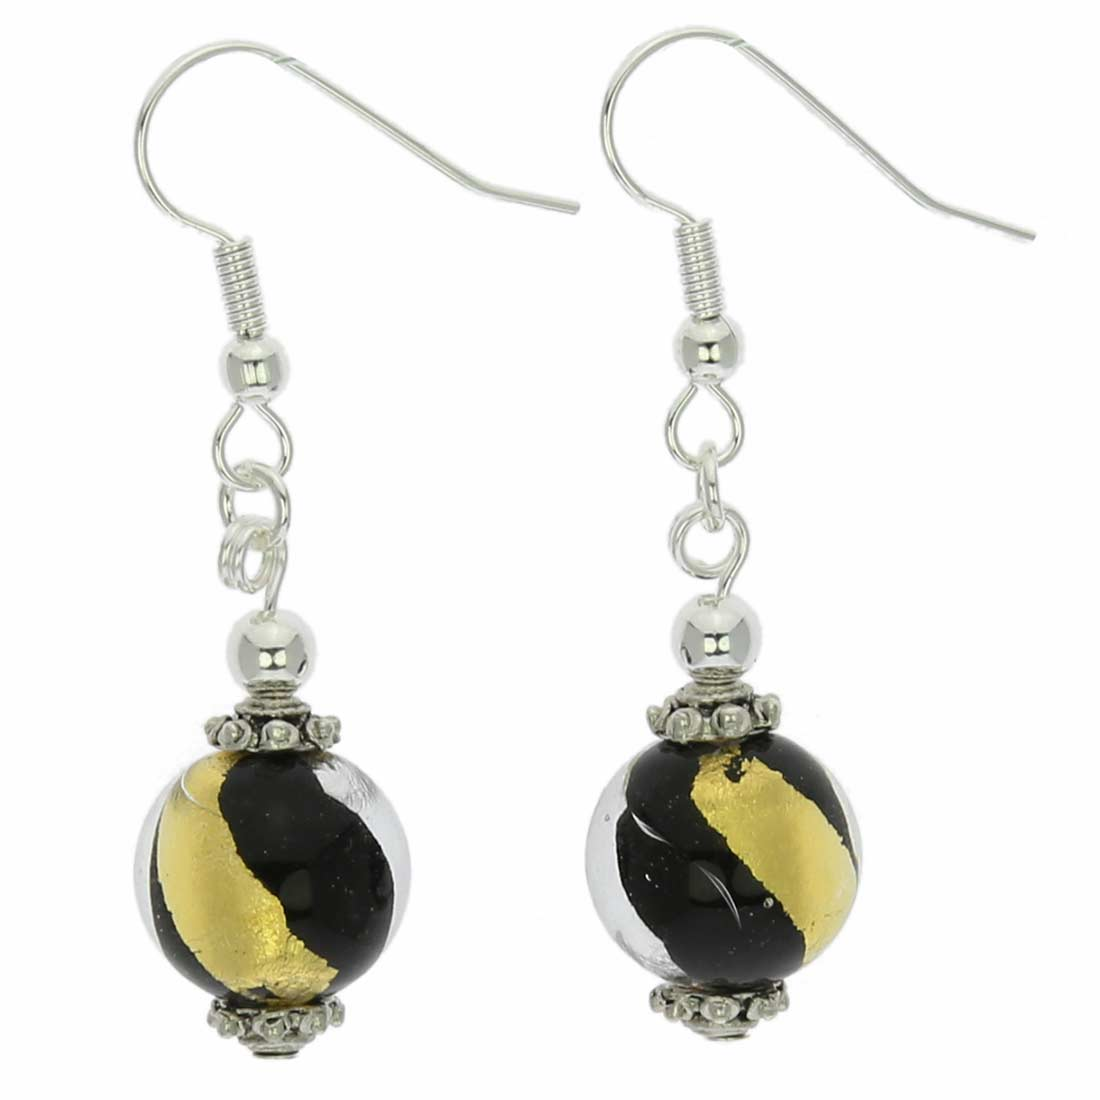 Gold and Silver Ball Earrings